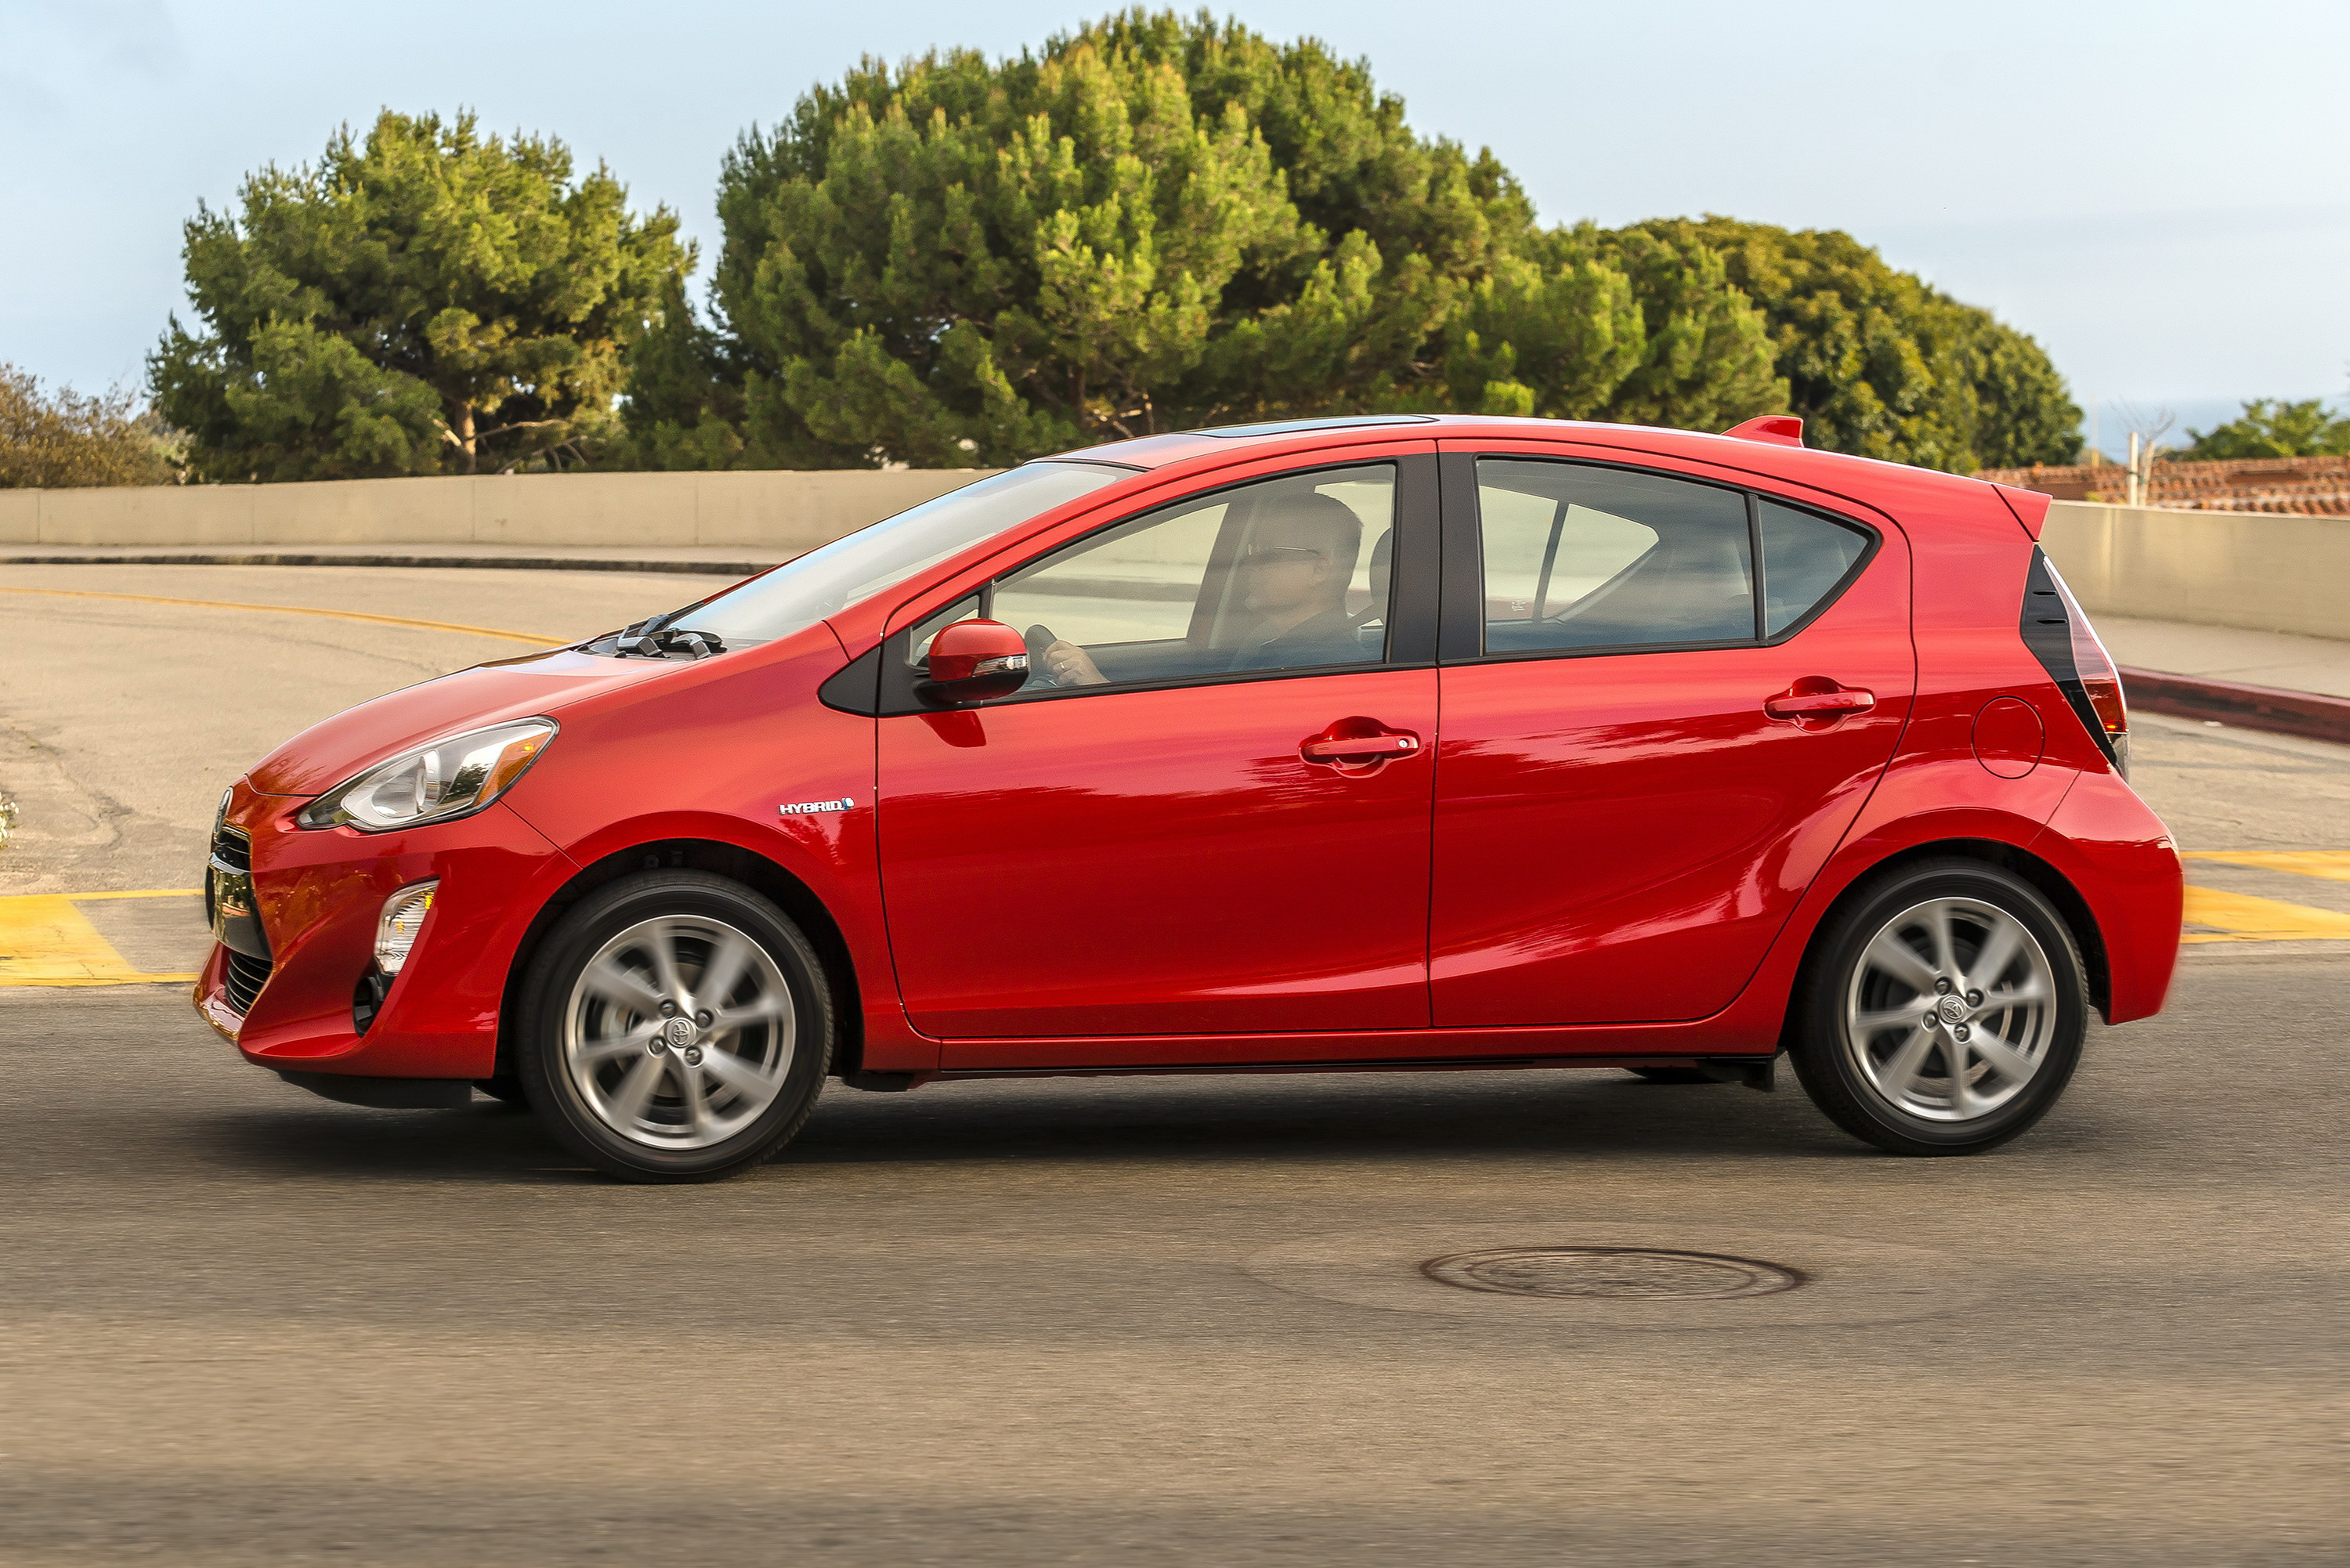 2015 toyota prius c review gallery 650932 top speed. Black Bedroom Furniture Sets. Home Design Ideas